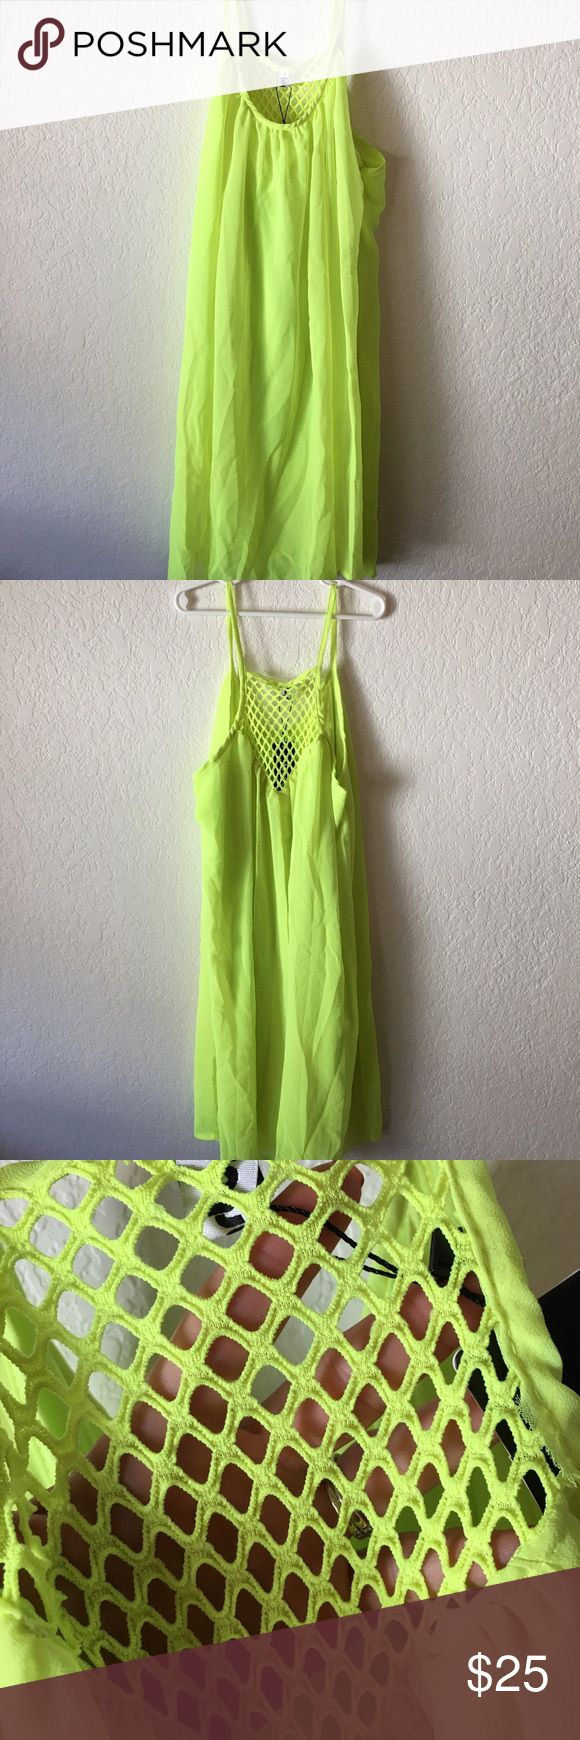 Neon Yellow Dress Small Neon Yellow Dress with mesh racerback detail. Dresses Mini